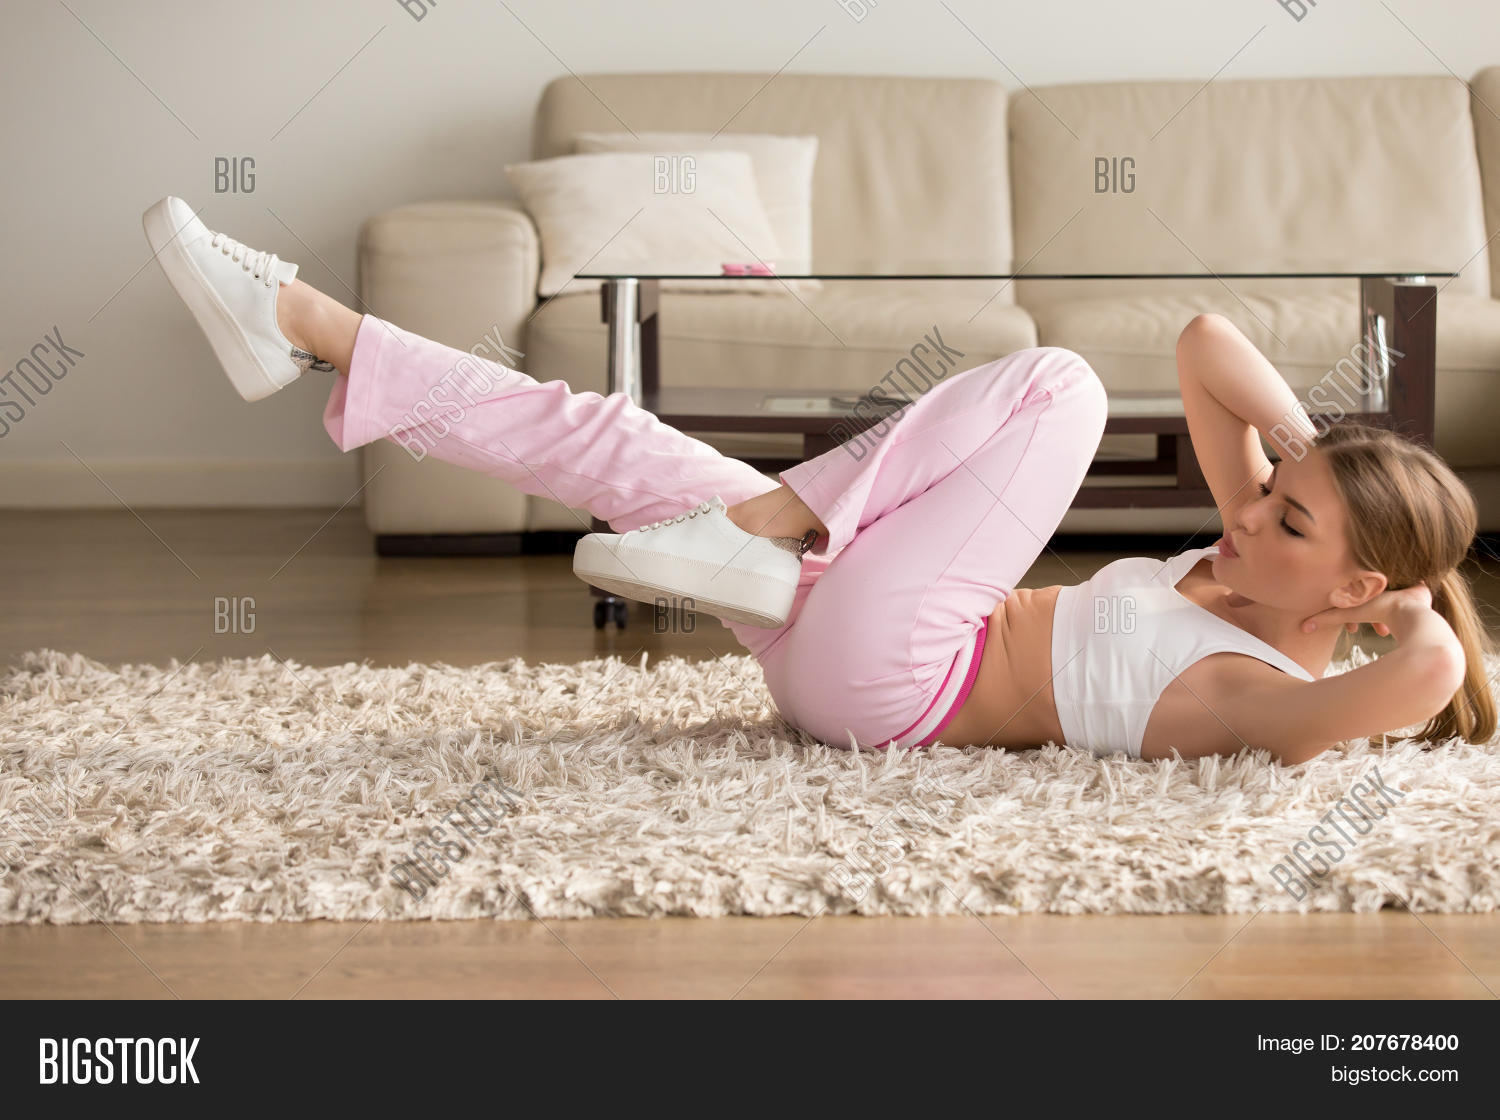 Young Fitness Girl Image Photo Free Trial Bigstock